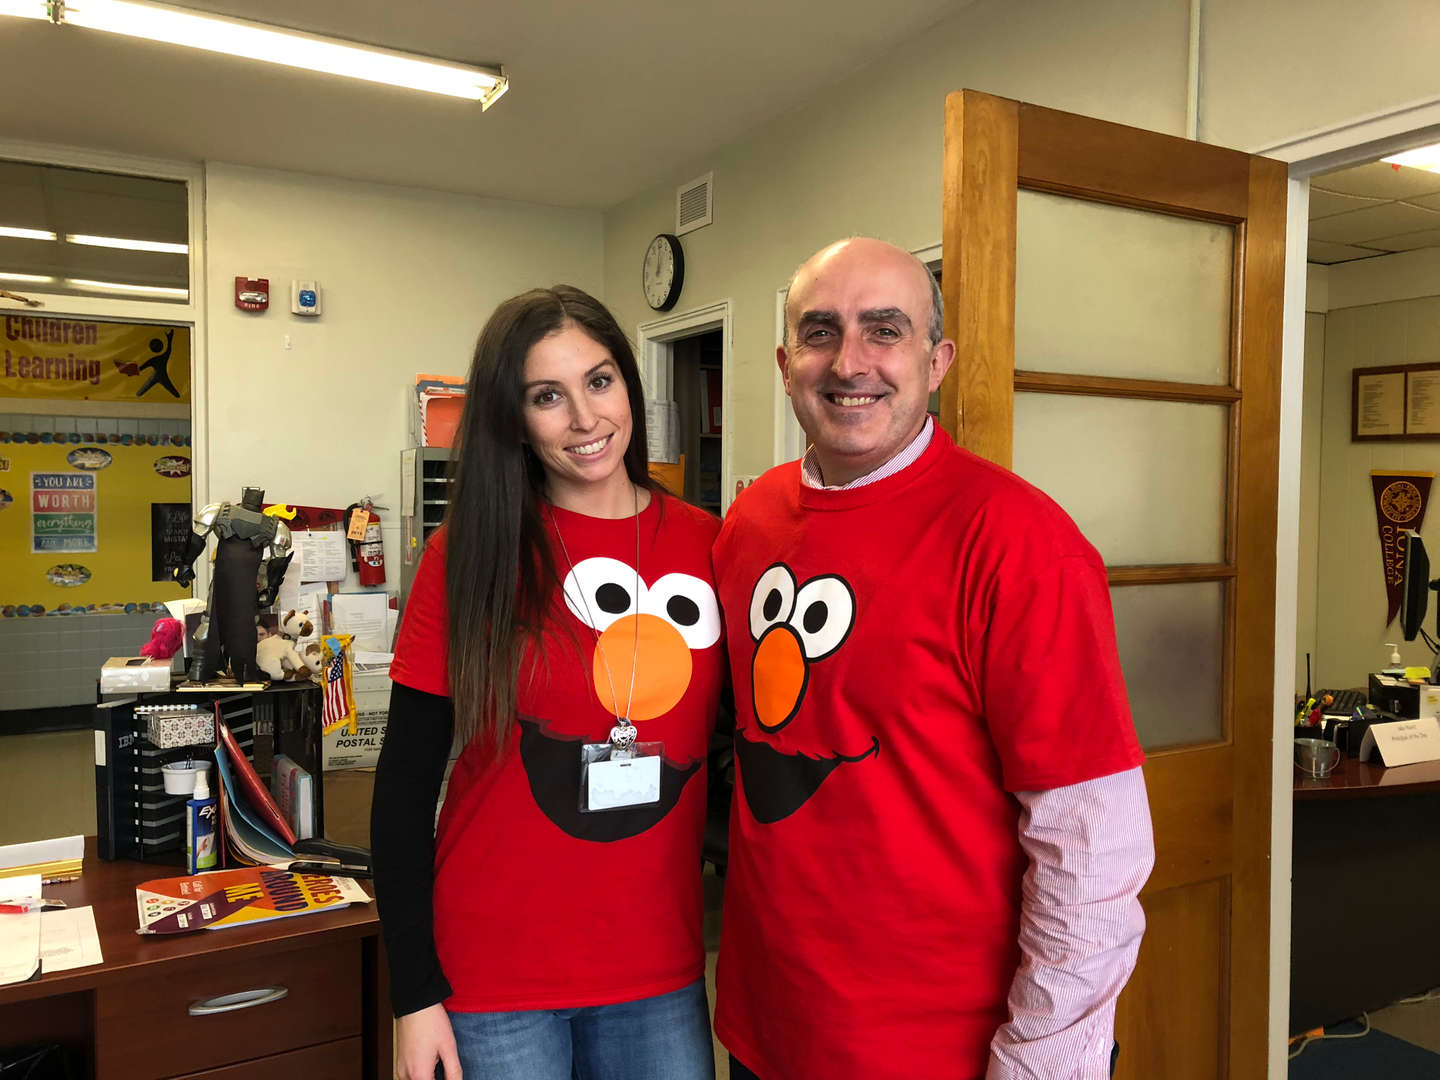 Mr. Mercora and Ms. Muratore celebrate Elmo for Sesame Street Day!